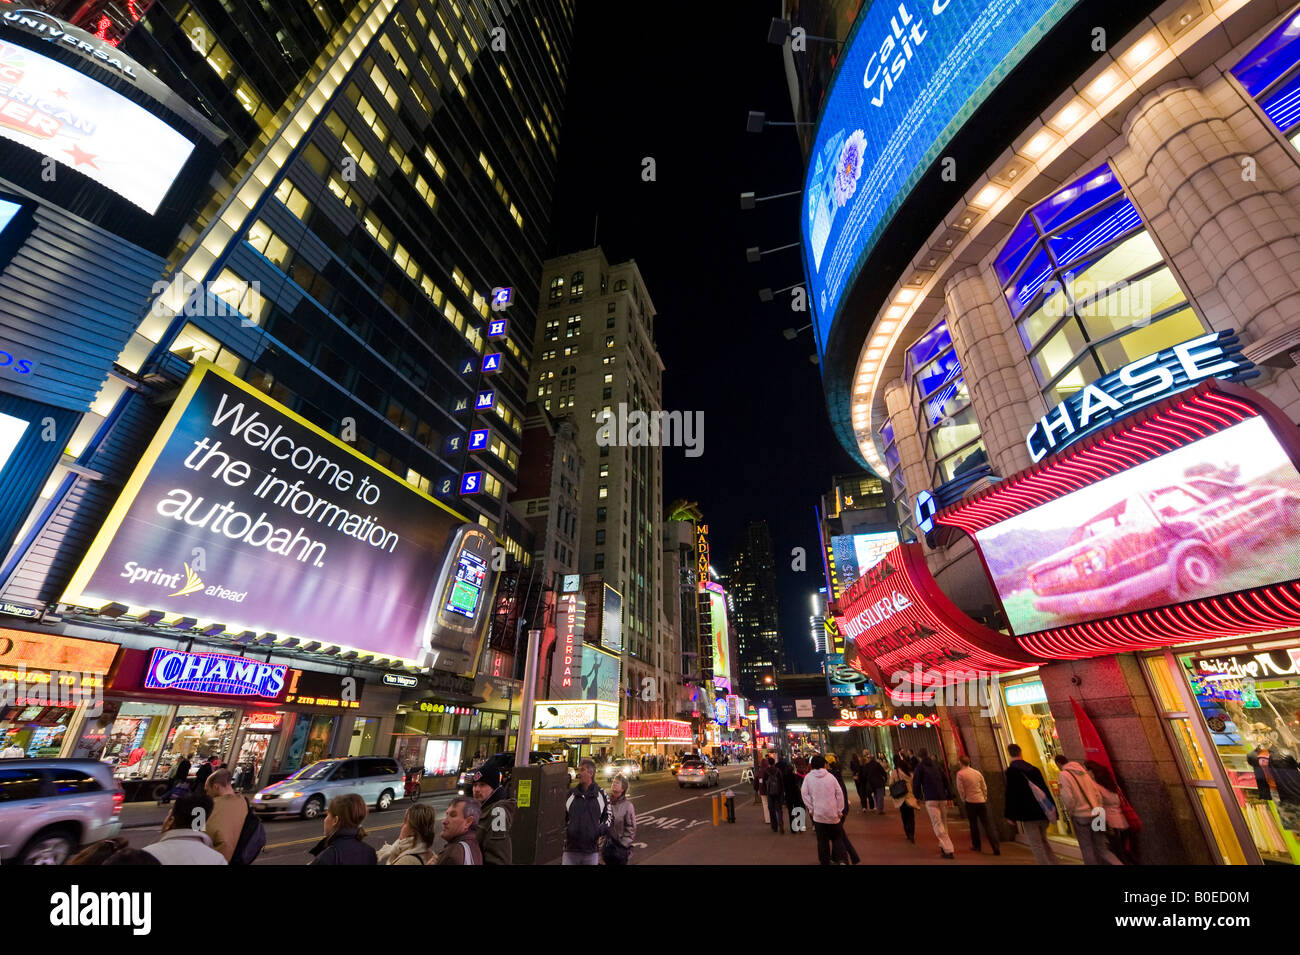 Junction of West 42nd Street and 7th Avenue at Times Square, Manhattan, New York City - Stock Image